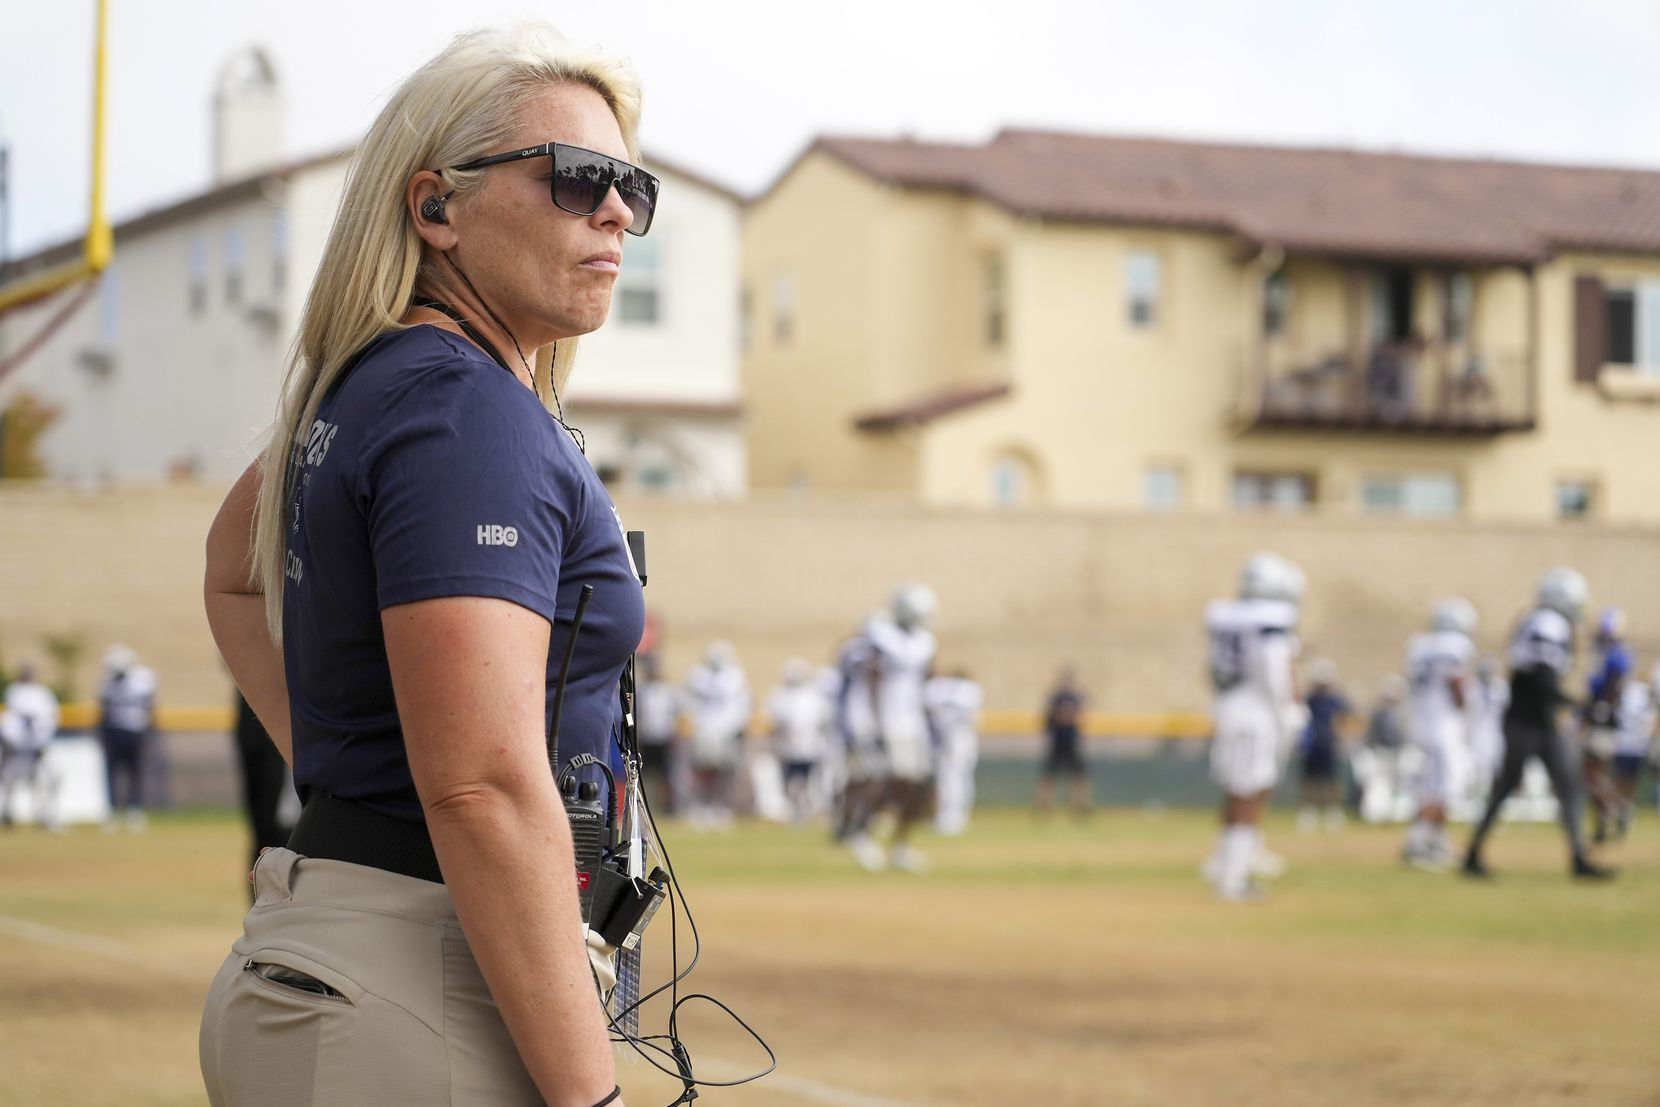 Shannon Furman of HBO's Hard Knocks watches during a joint practice between the Dallas Cowboys and the Los Angeles Rams at training camp on Saturday, Aug. 7, 2021, in Oxnard, Calif.